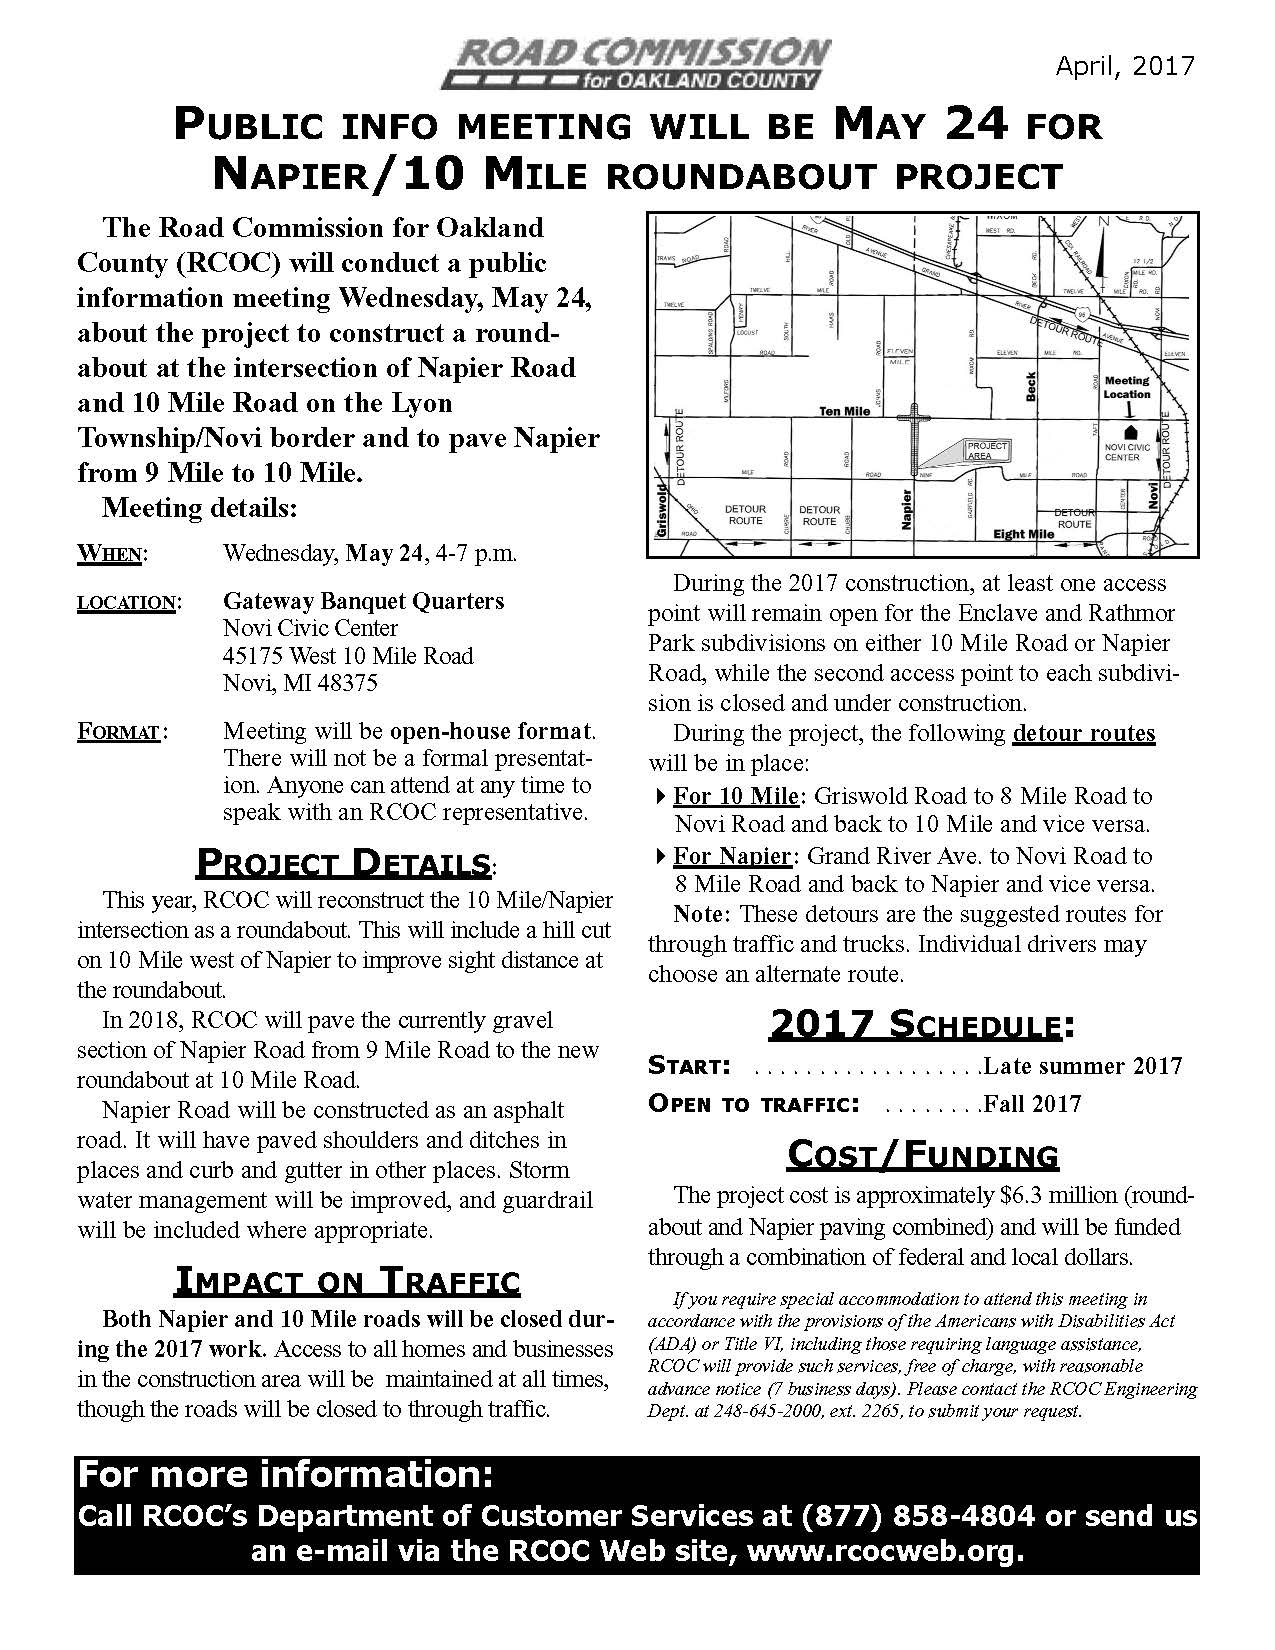 2017 Napier/10 Mile Road Information Flier